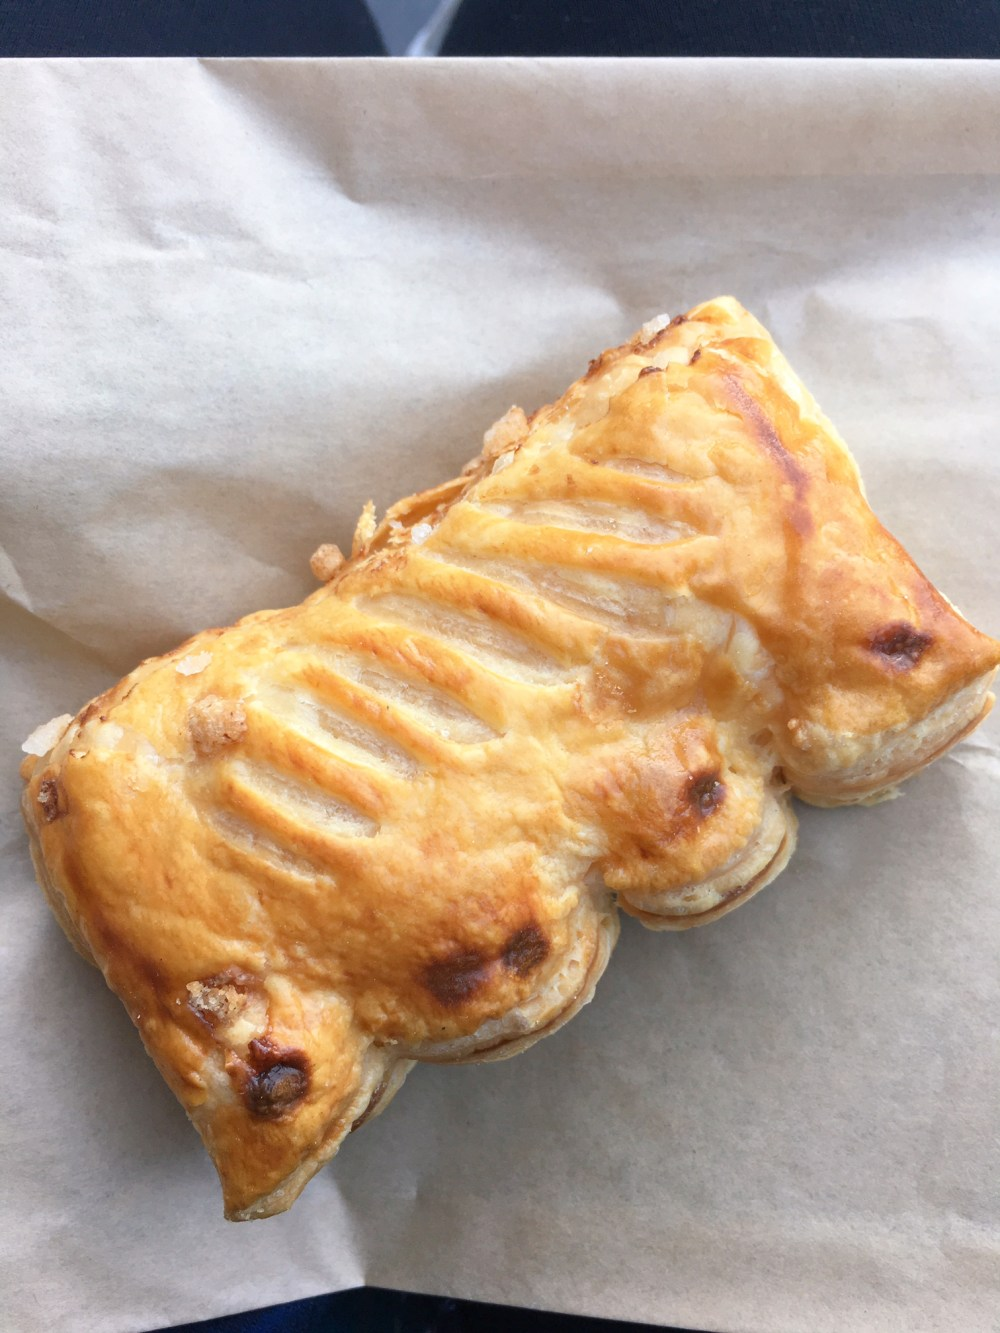 guava & cream cheese pastelito